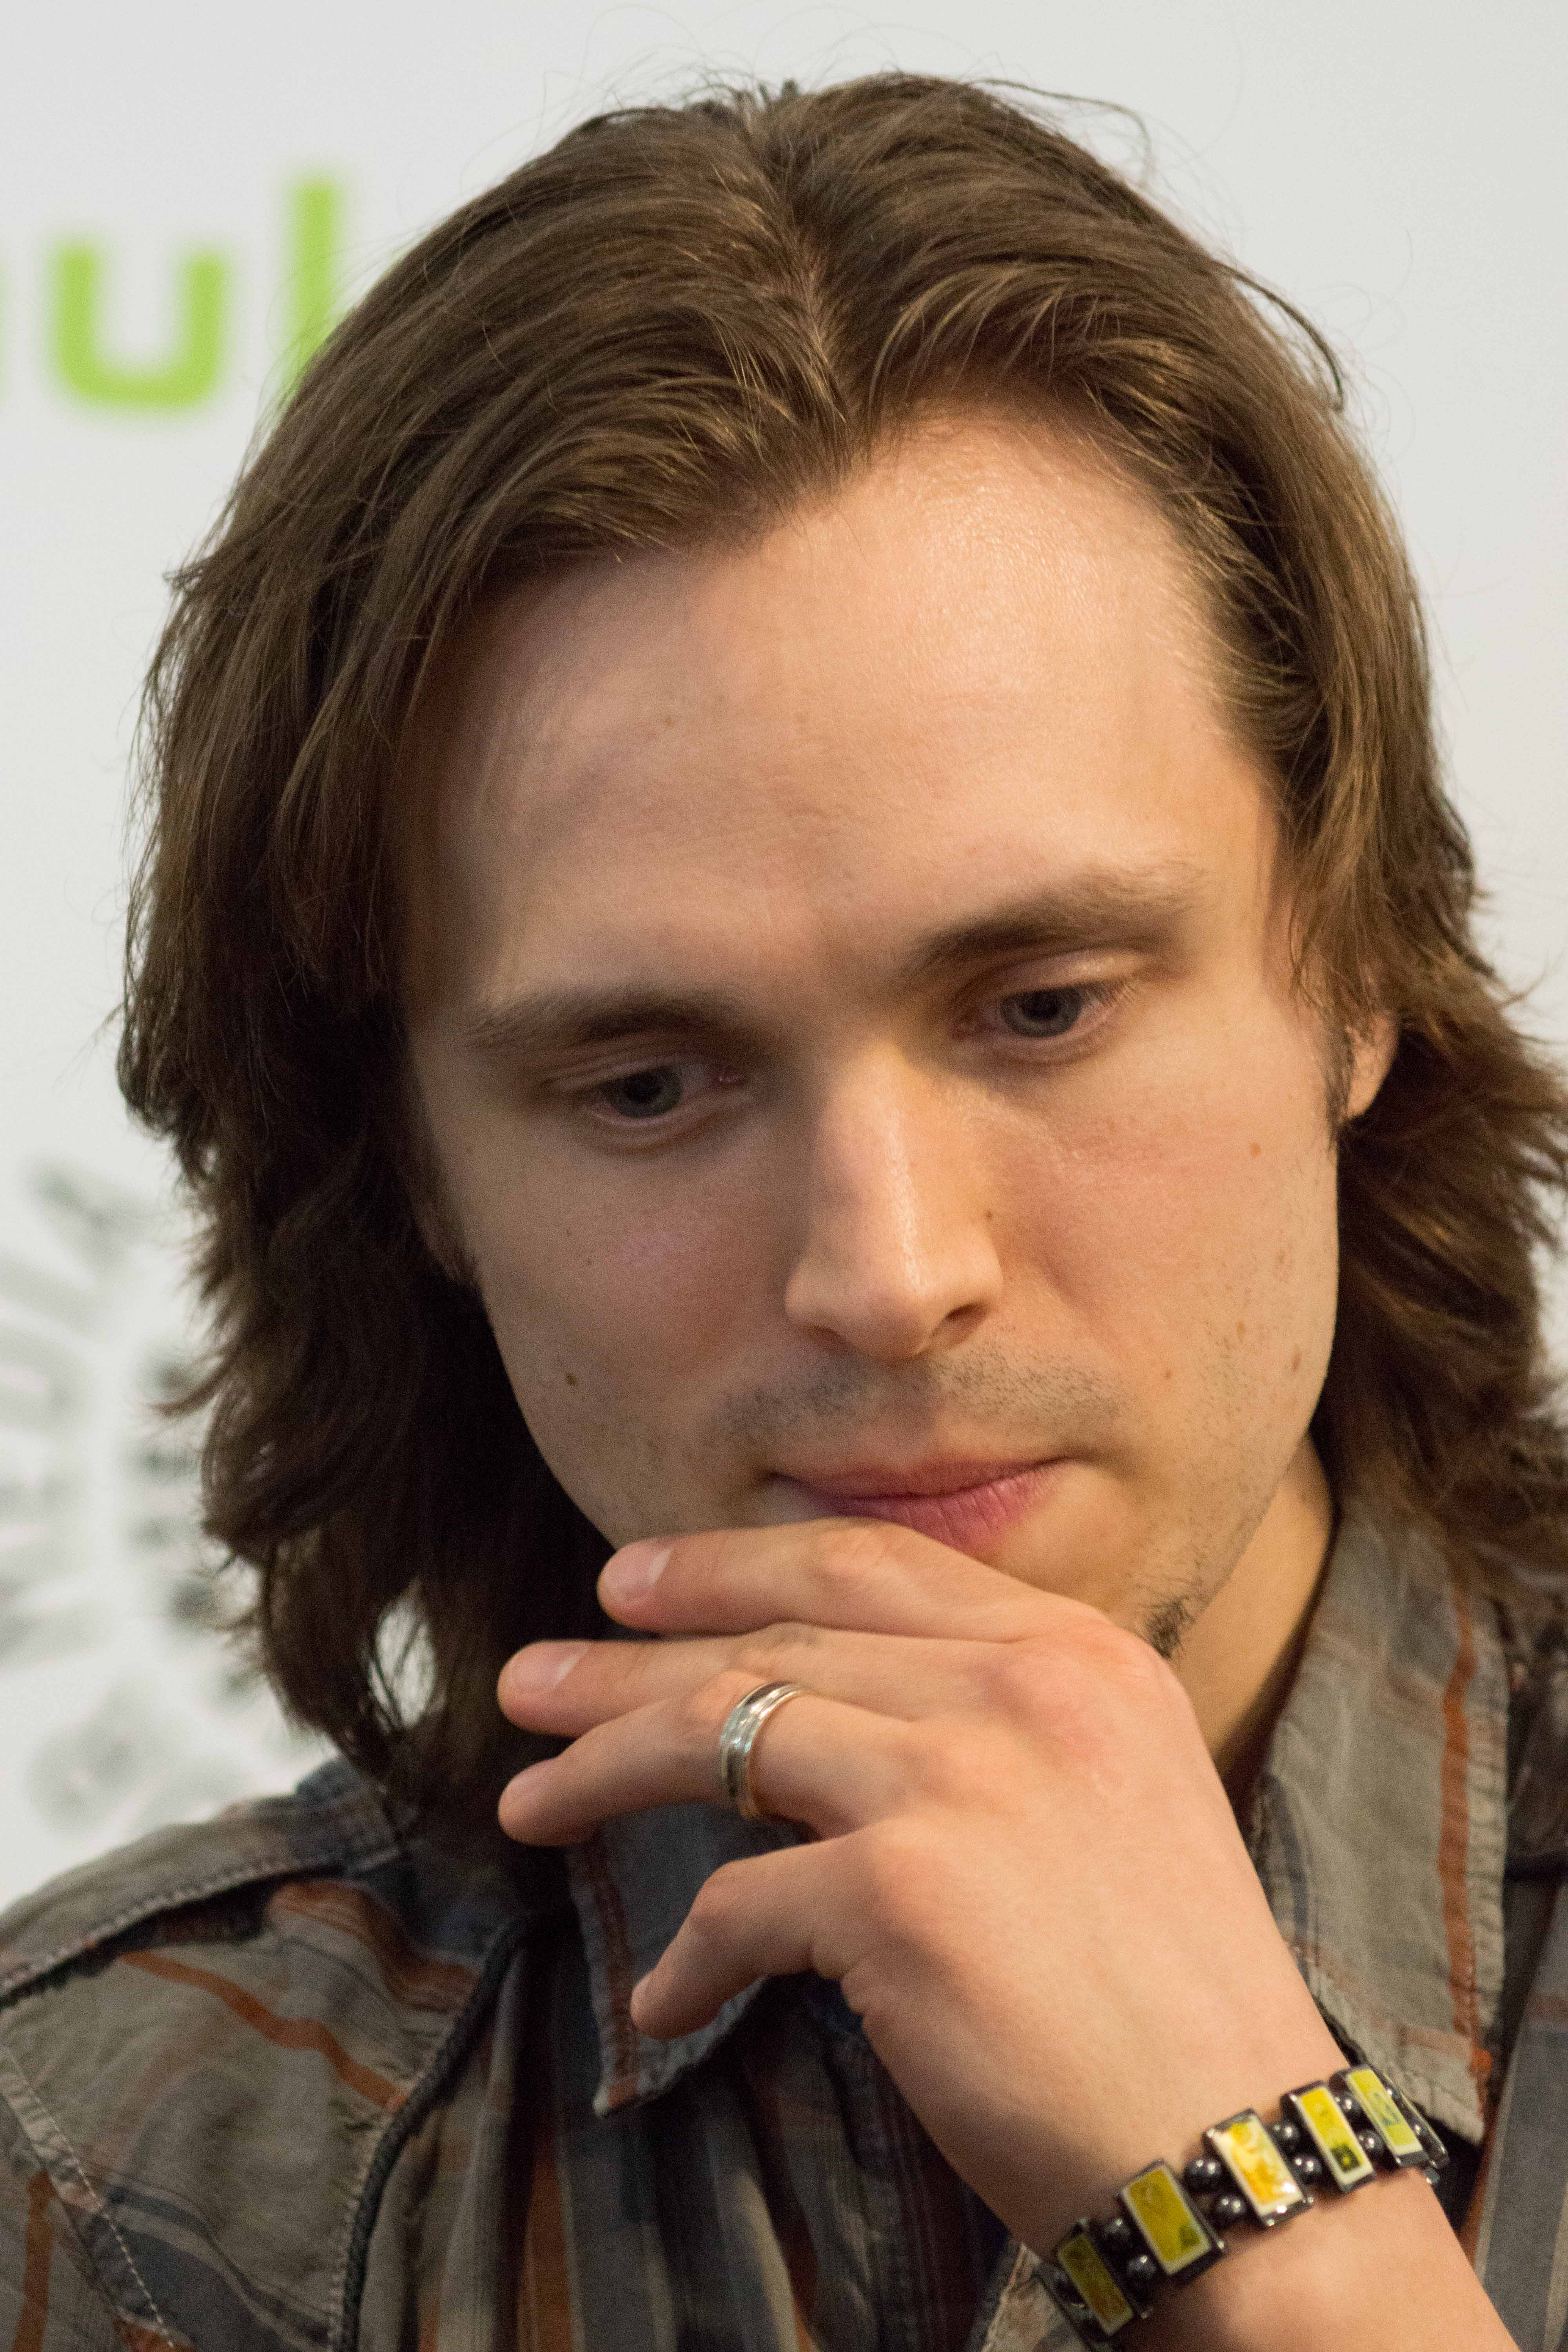 jonathan jackson actorjonathan jackson wife, jonathan jackson lordship, jonathan jackson height, jonathan jackson young, jonathan jackson and lisa vultaggio, jonathan jackson instagram, jonathan jackson songs, jonathan jackson phd, jonathan jackson - unchained melody, jonathan jackson love rescue me, jonathan jackson, jonathan jackson nashville, jonathan jackson imdb, jonathan jackson general hospital, jonathan jackson and enation, jonathan jackson twitter, jonathan jackson youtube, jonathan jackson wiki, jonathan jackson actor, jonathan jackson facebook